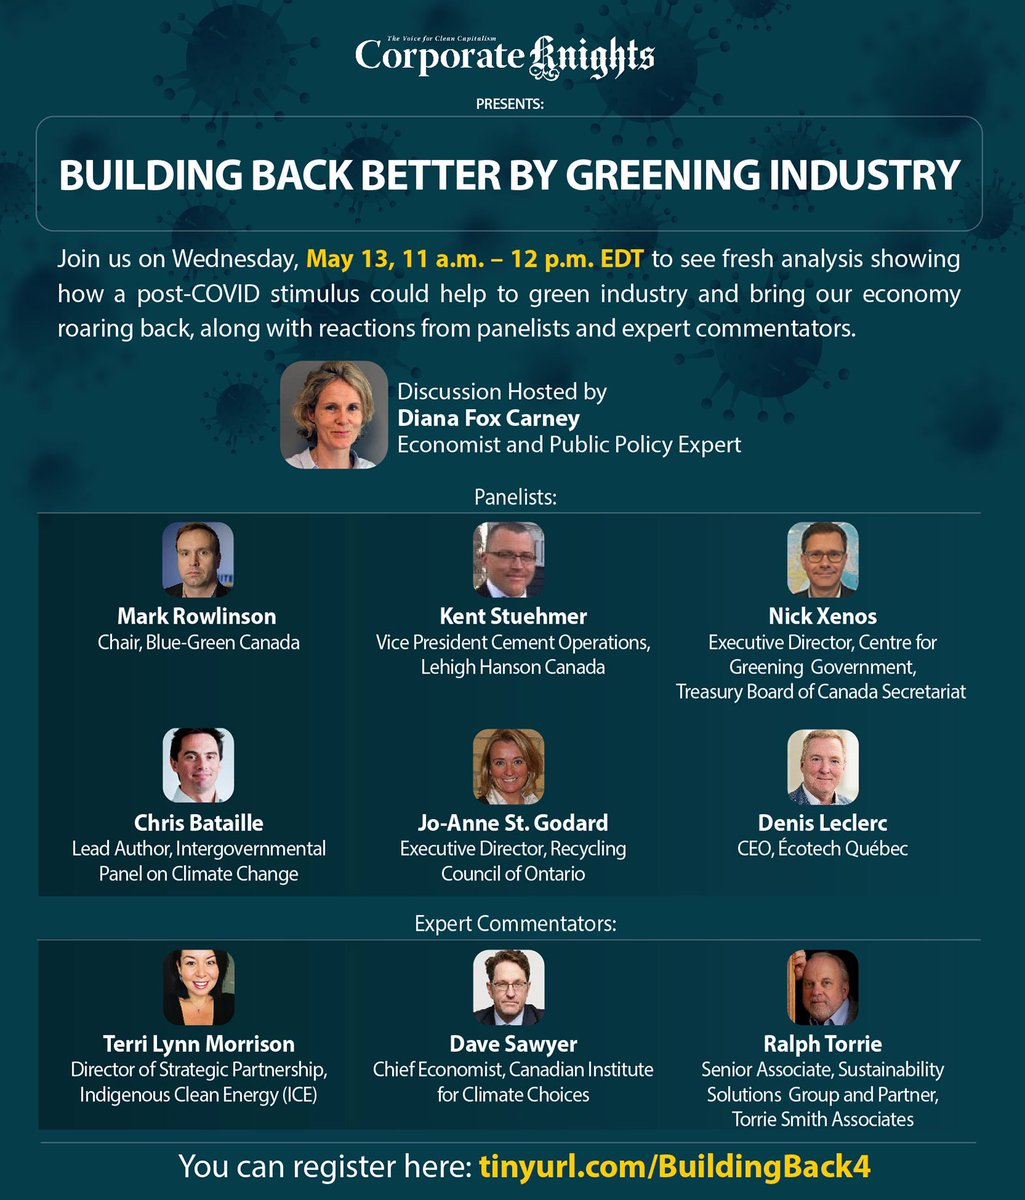 Don't forget to join us tomorrow for our fourth roundtable on #BuildingBackBetter by boosting the circular economy, electrifying light industry and decarbonizing heavy industry. Panelists from @EcotechQuebec,@RCOntario + more! Register here: https://t.co/VNCdaMSJ7J #greenrecovery https://t.co/JT1ardt3GL